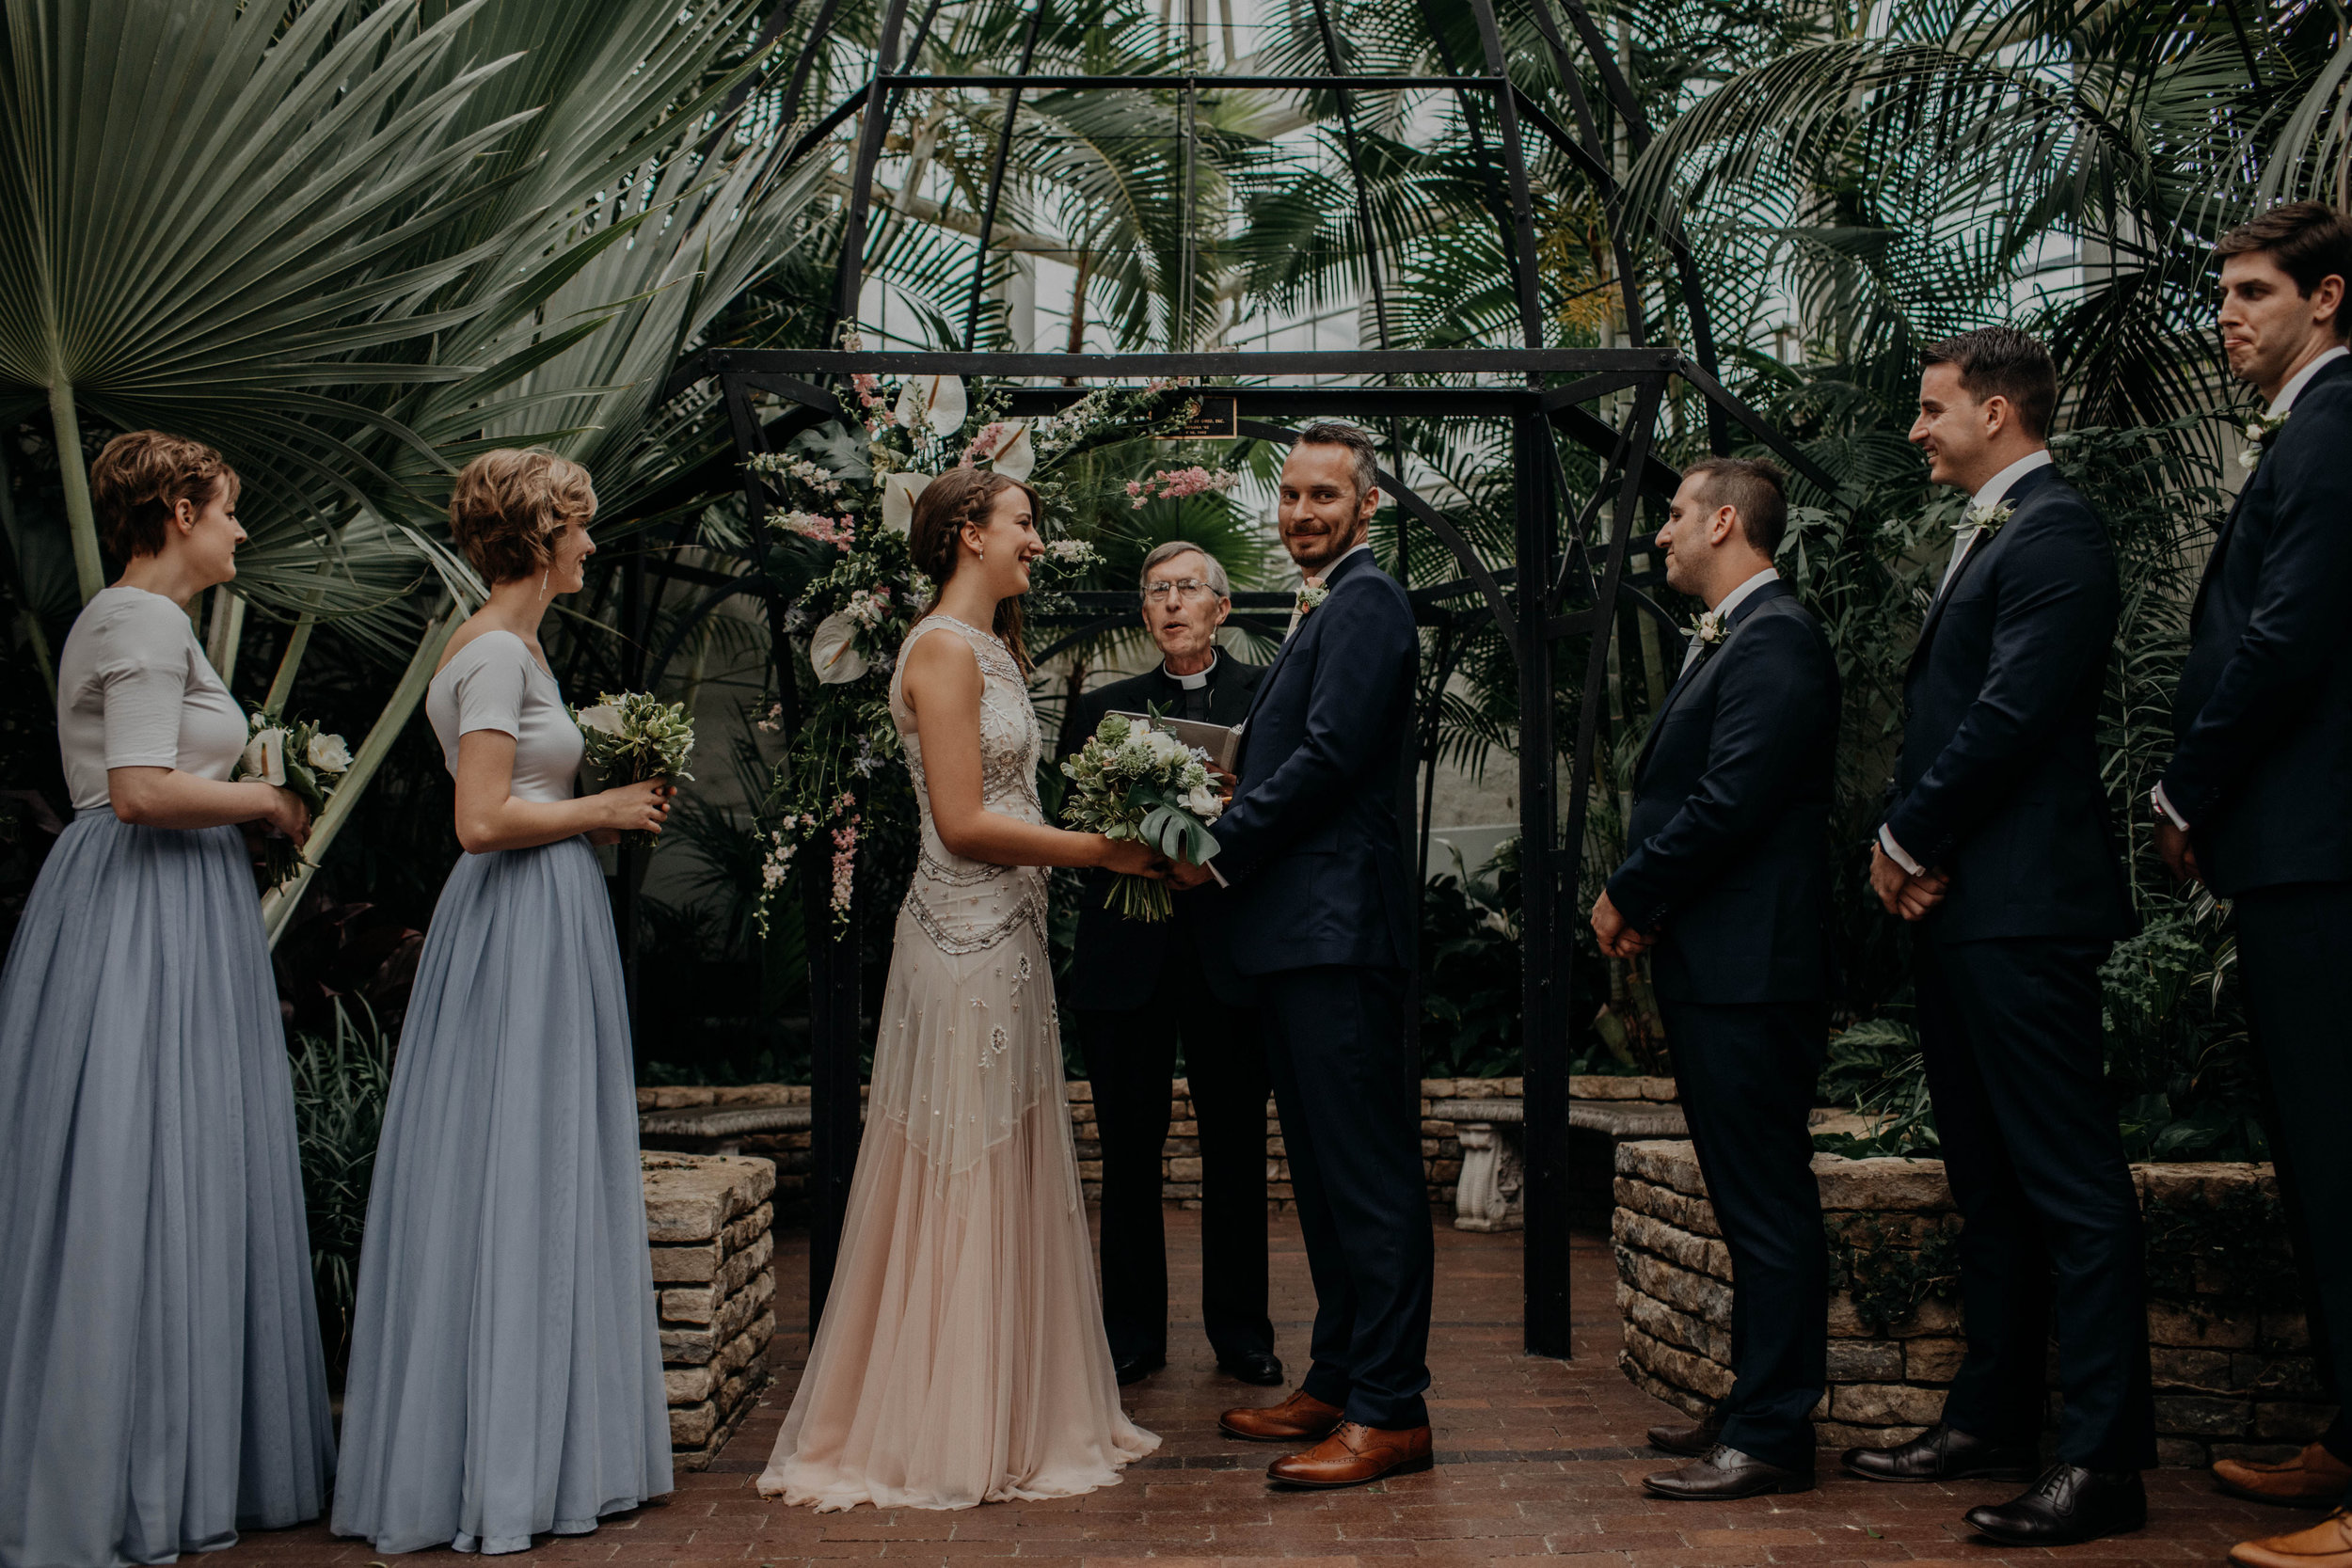 franklin park conservatory wedding columbus ohio wedding photographer grace e jones photography265.jpg